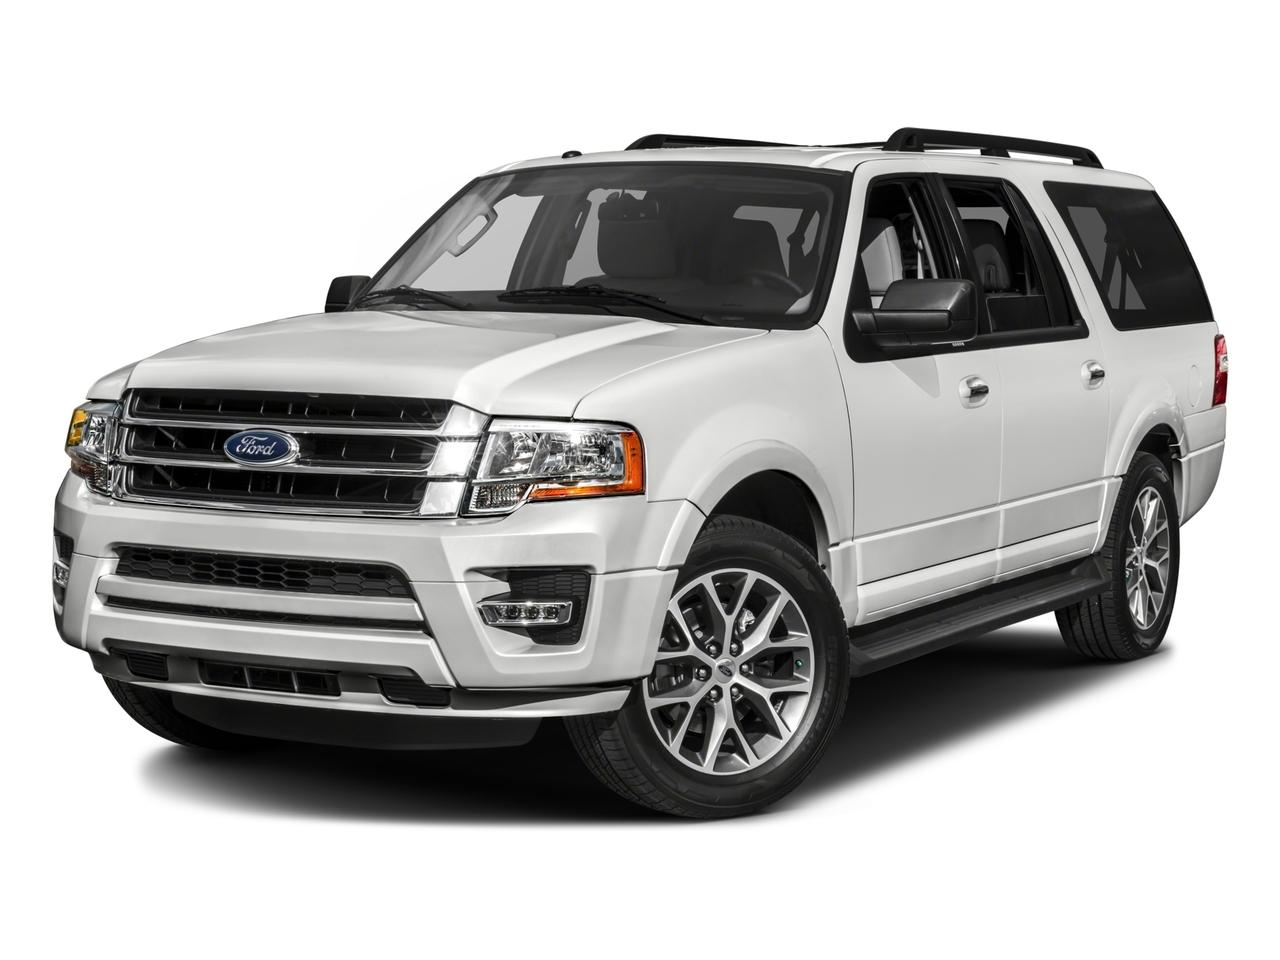 2017 Ford Expedition EL Vehicle Photo in Portland, OR 97225